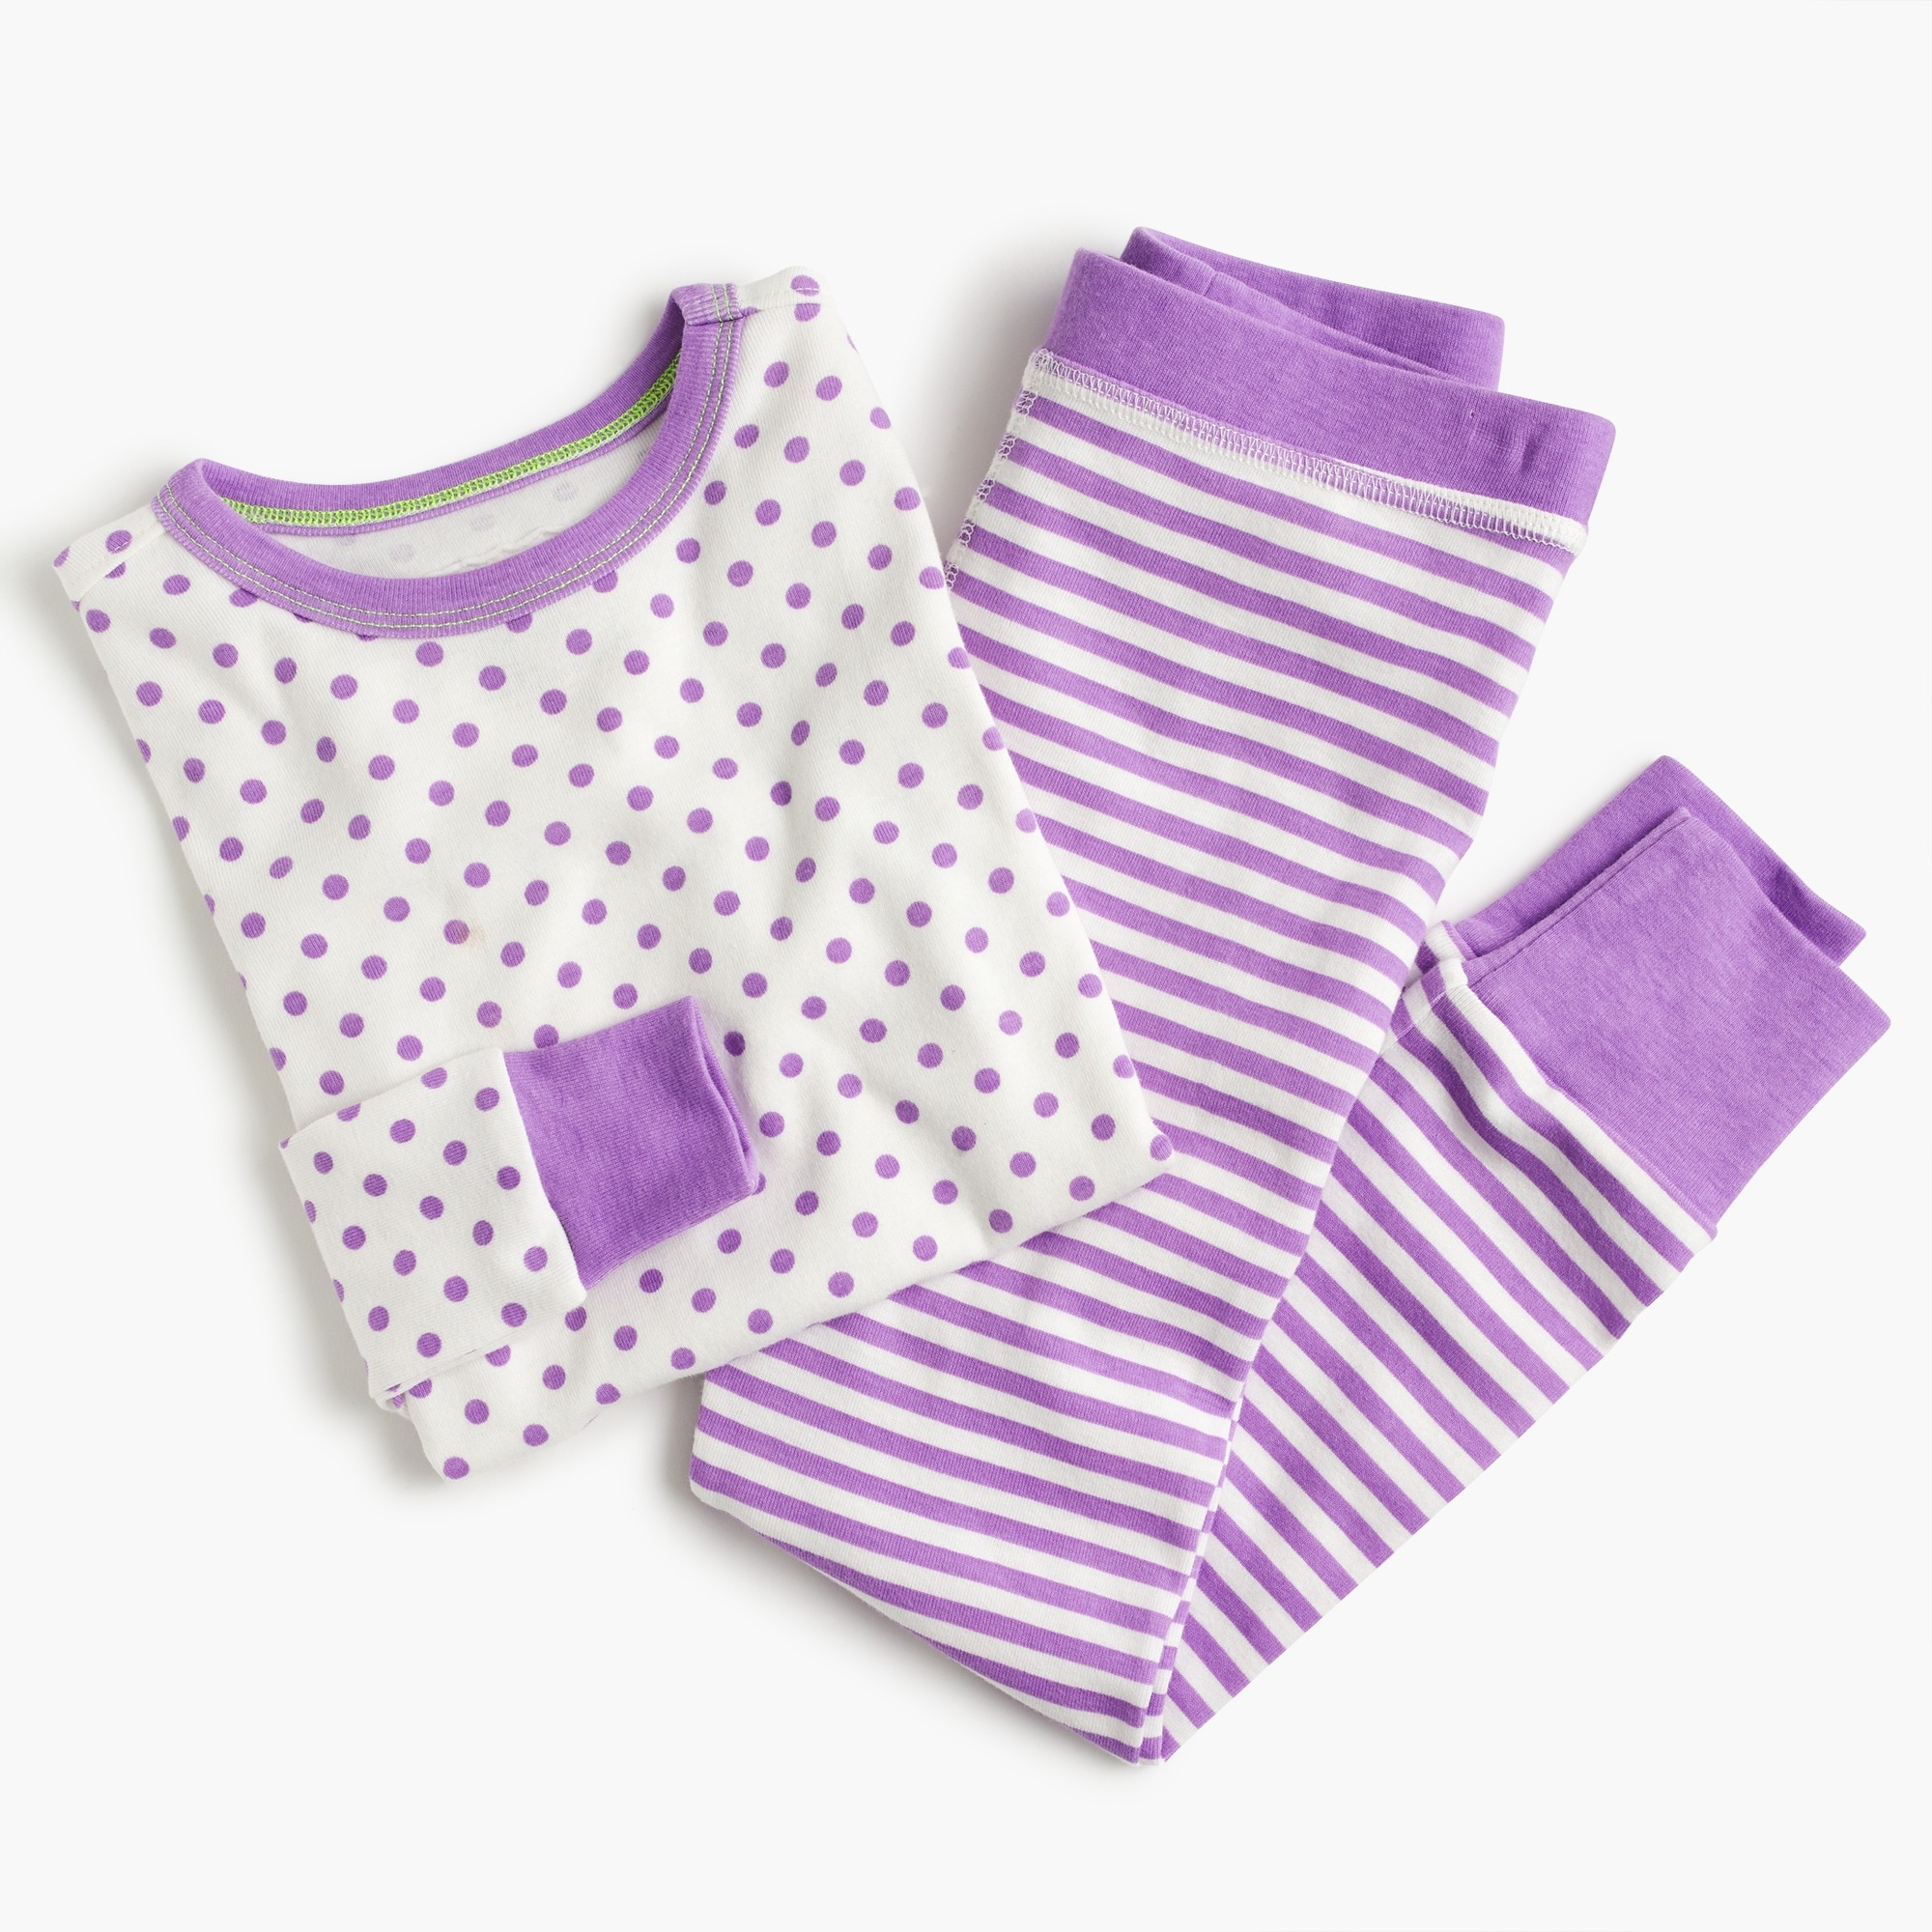 Girls' pajama set in dots and stripes girl new arrivals c